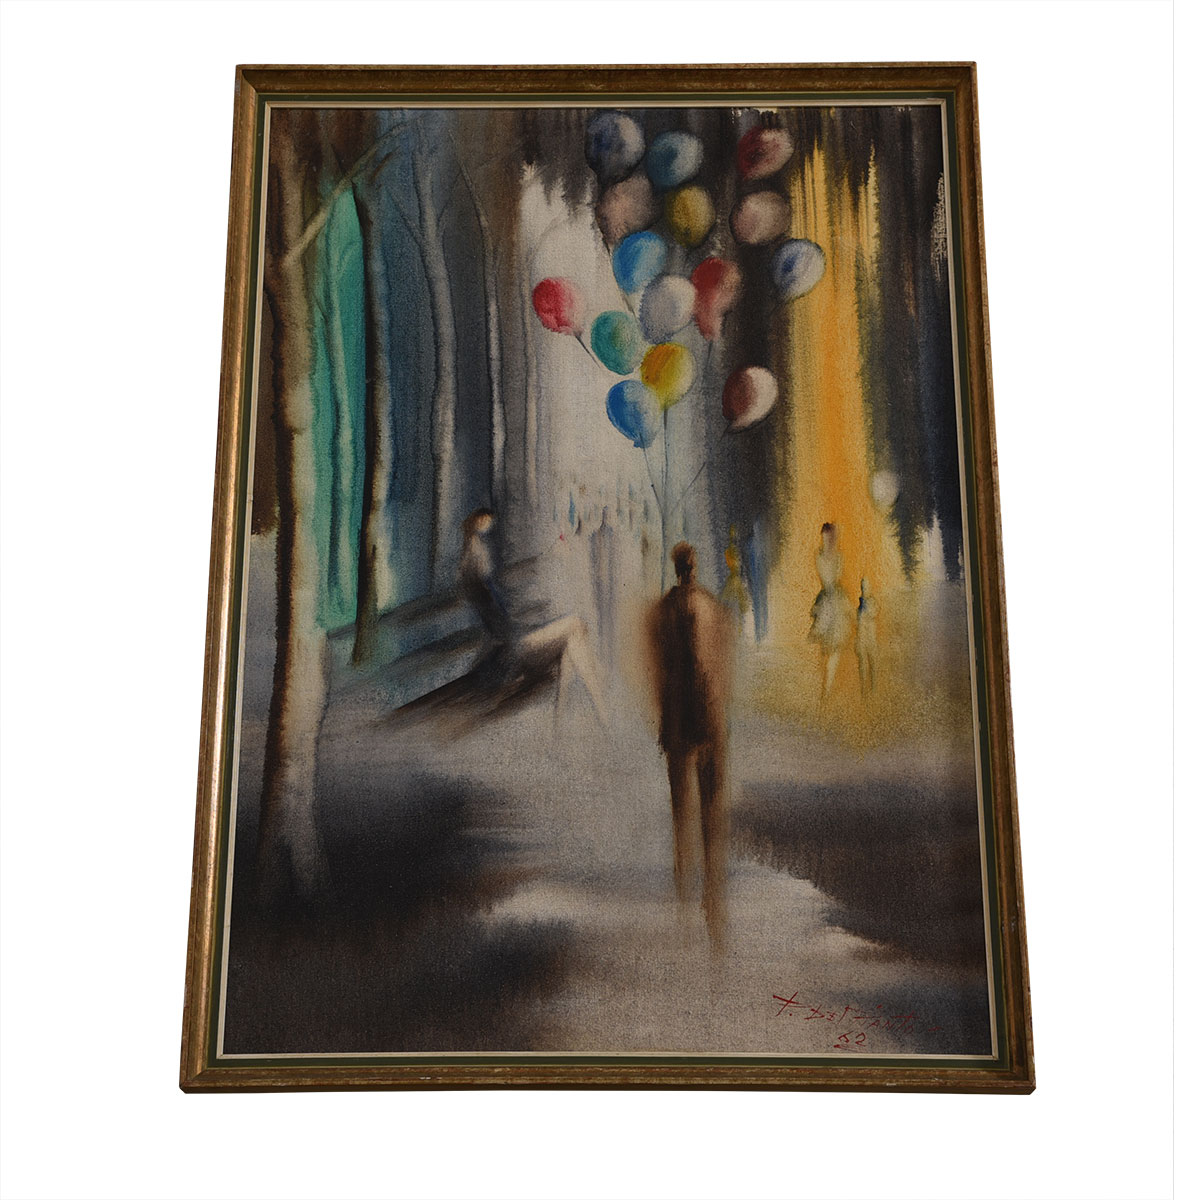 Vintage Man with Balloon Impressionistic Artwork